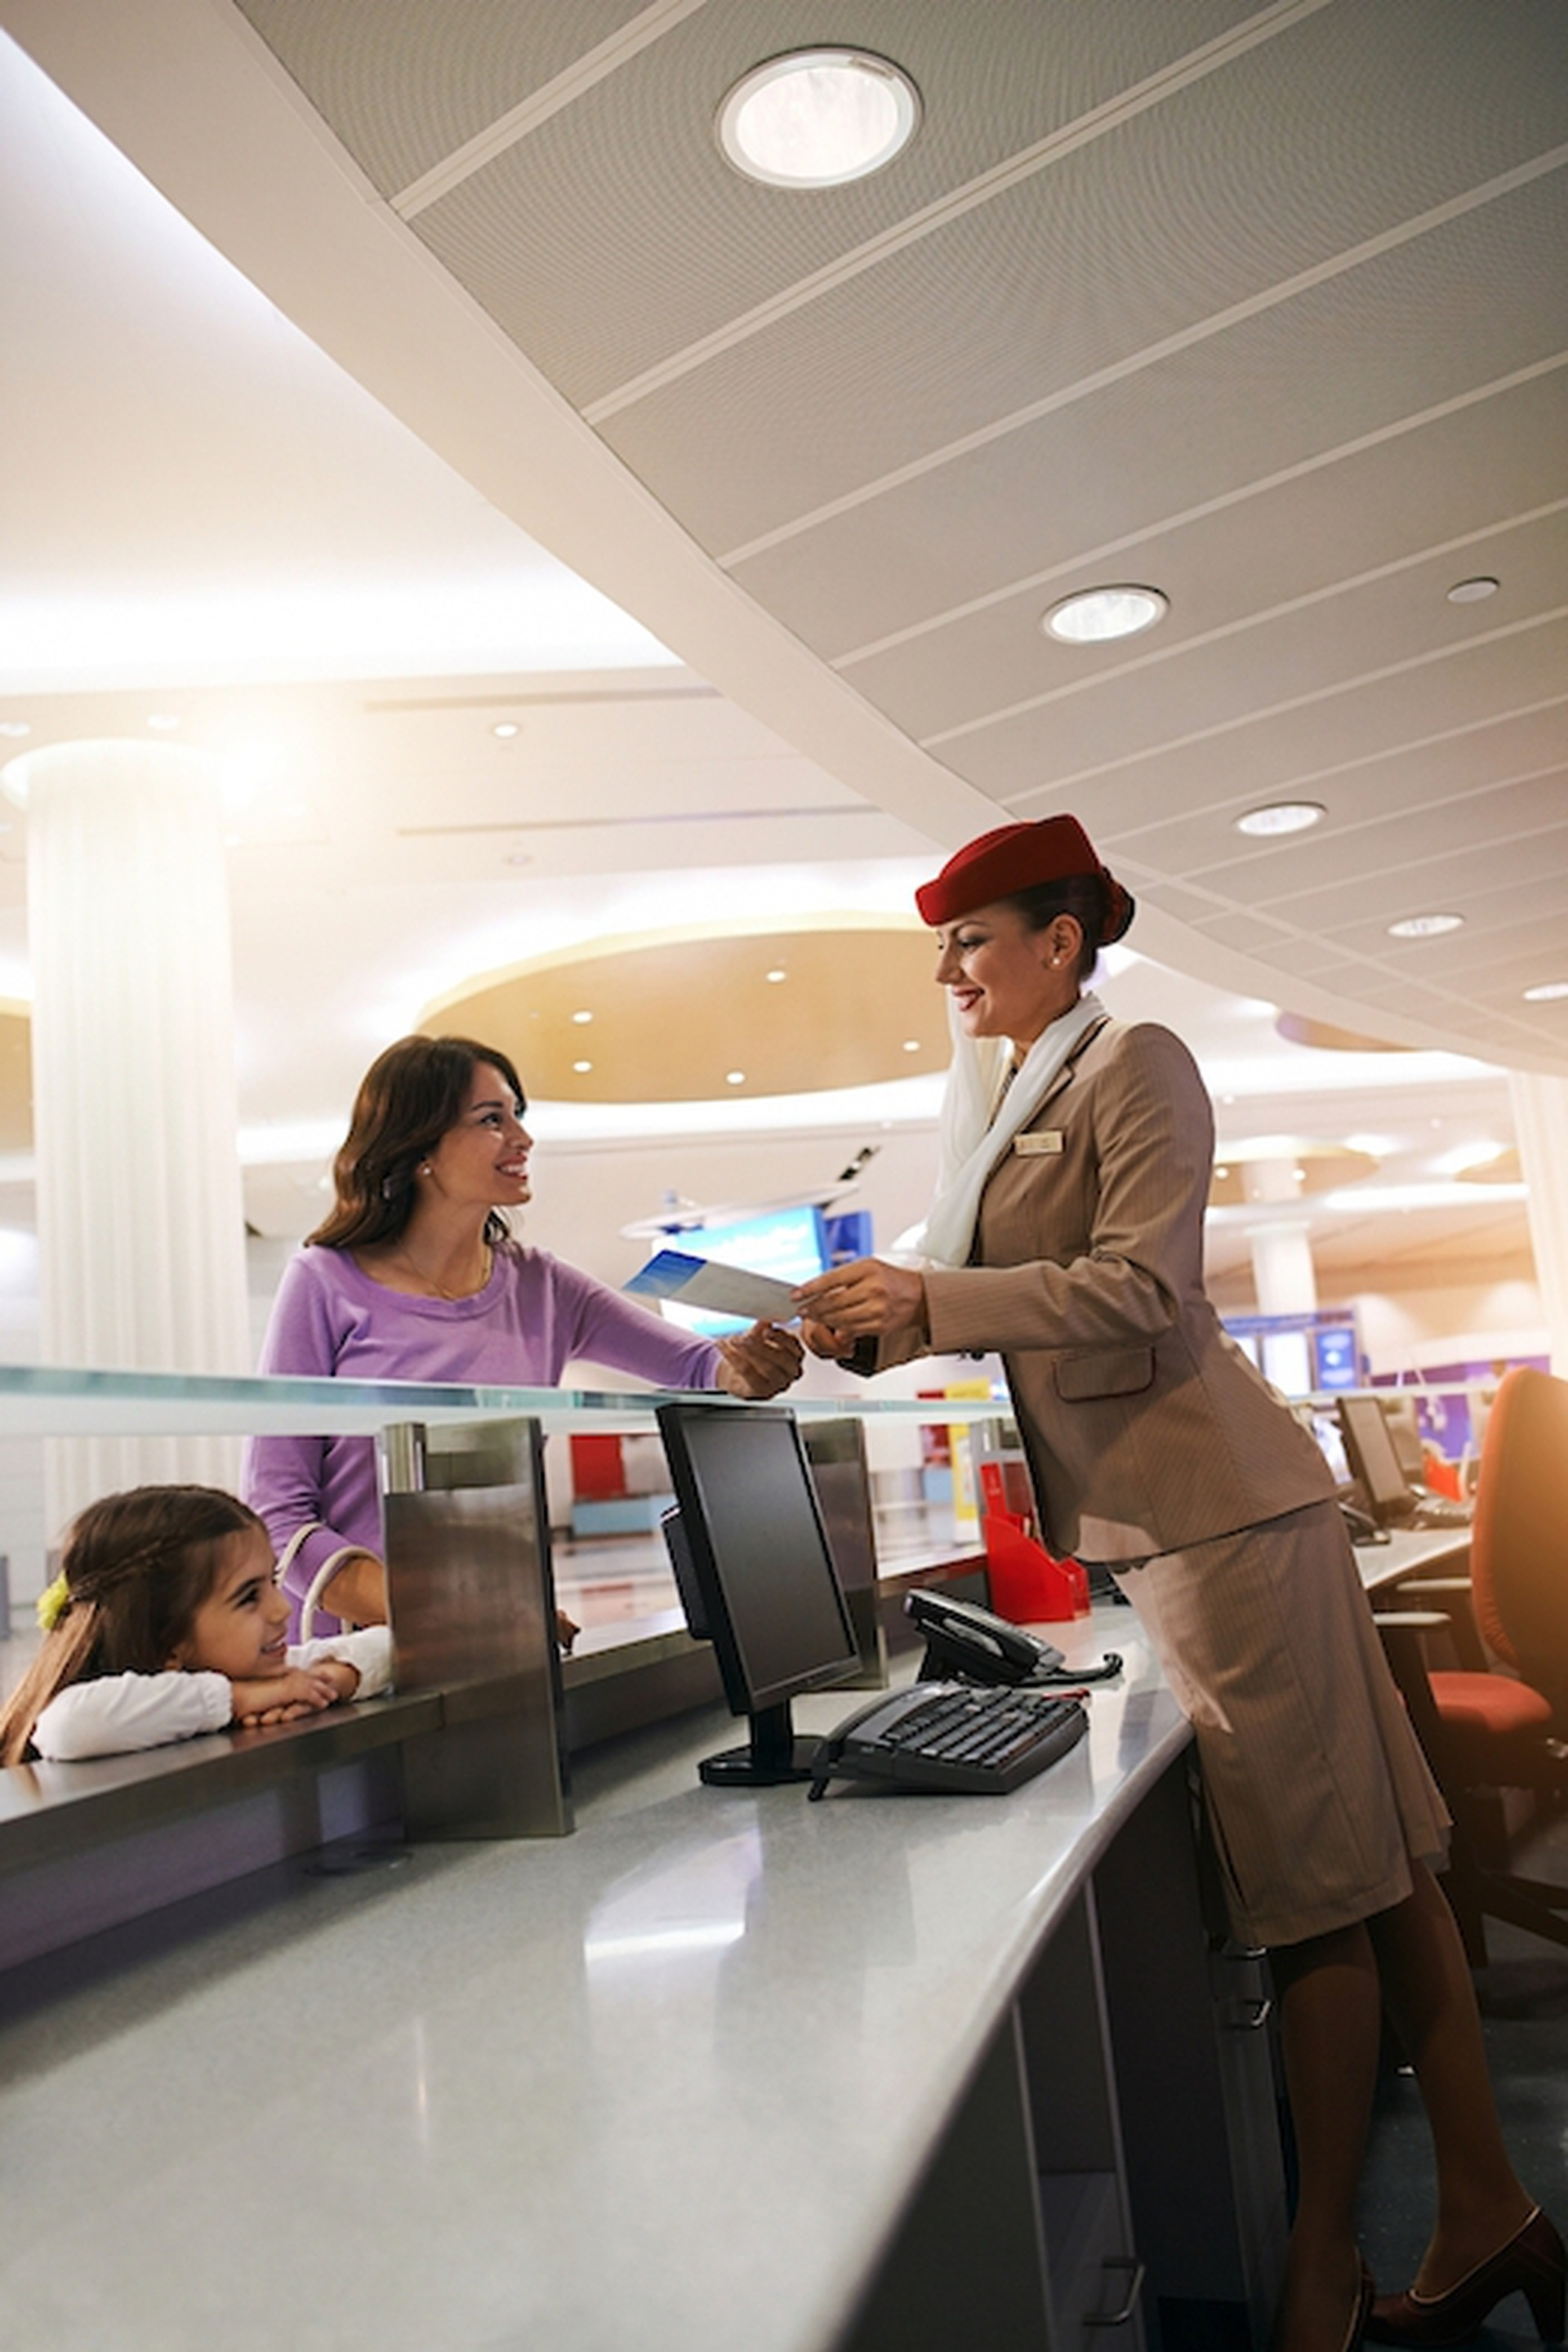 female-emirates-check-in-agent-S-_2_-831070.jpg